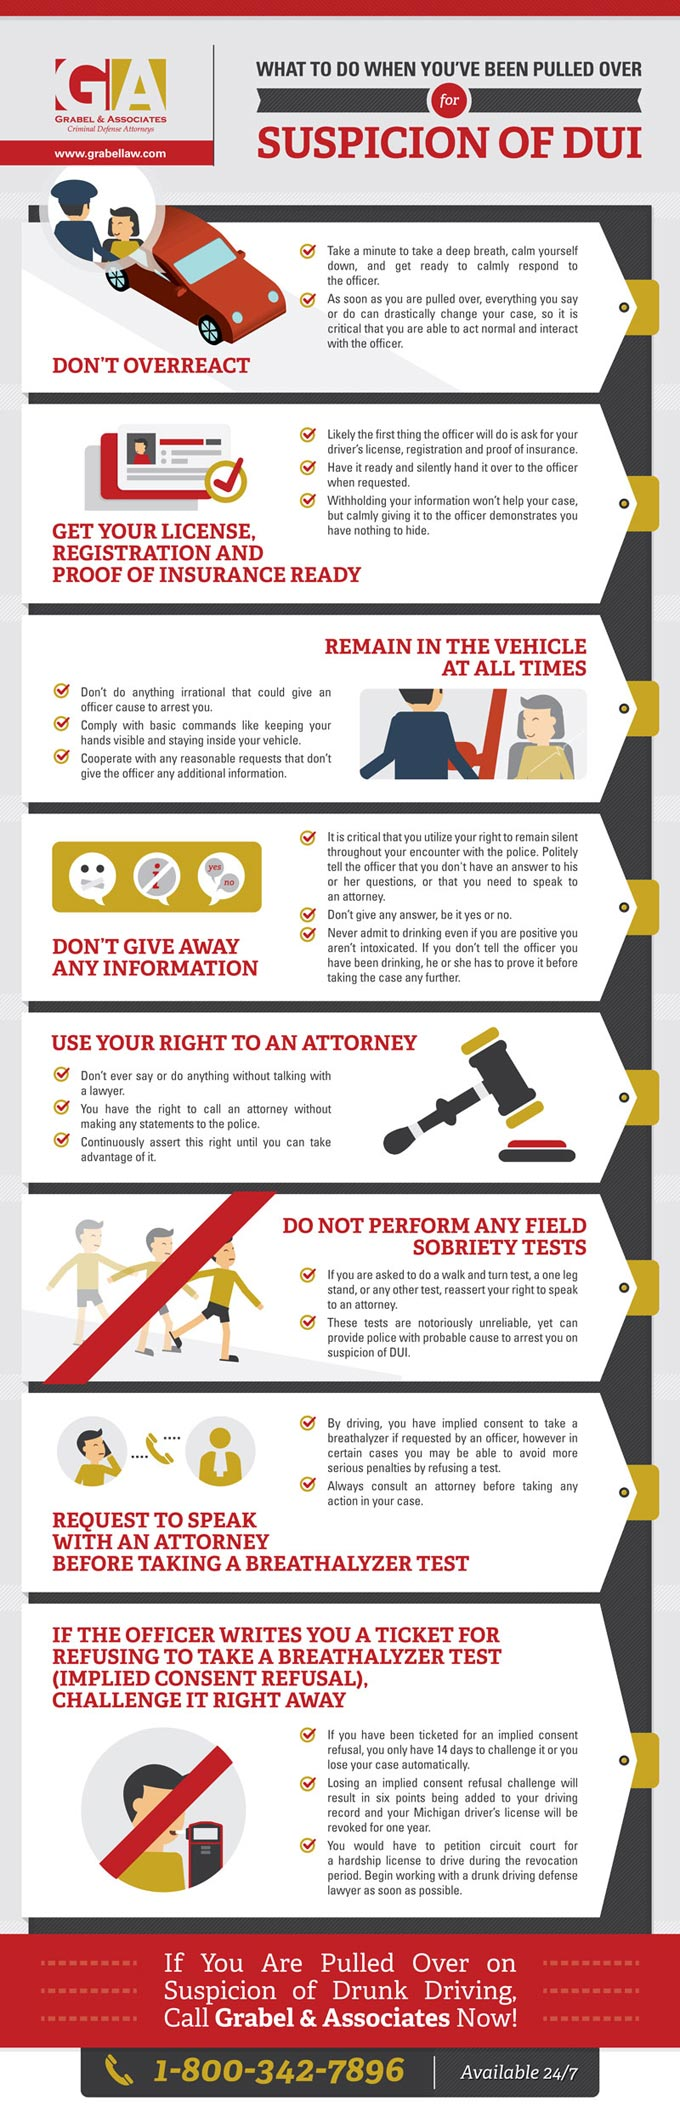 suspicion of dui in michigan infographic